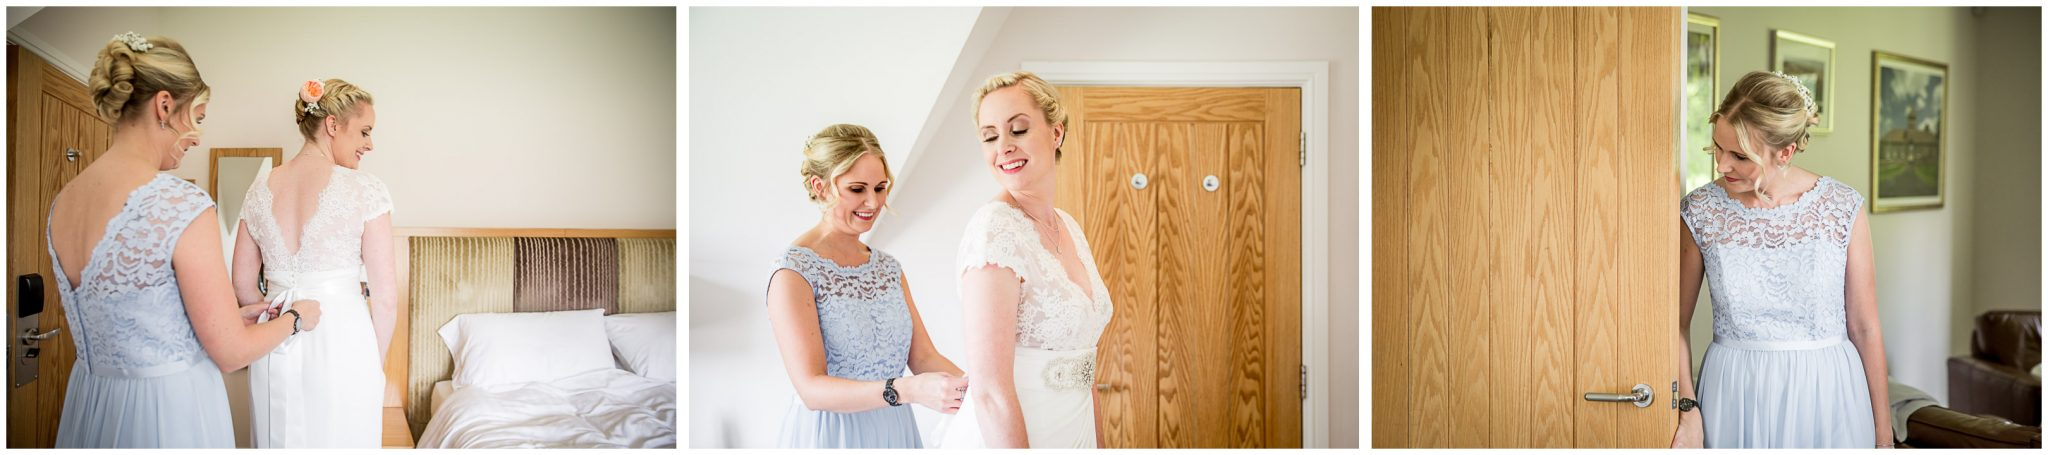 Oakley Hall wedding photography bride getting dressed